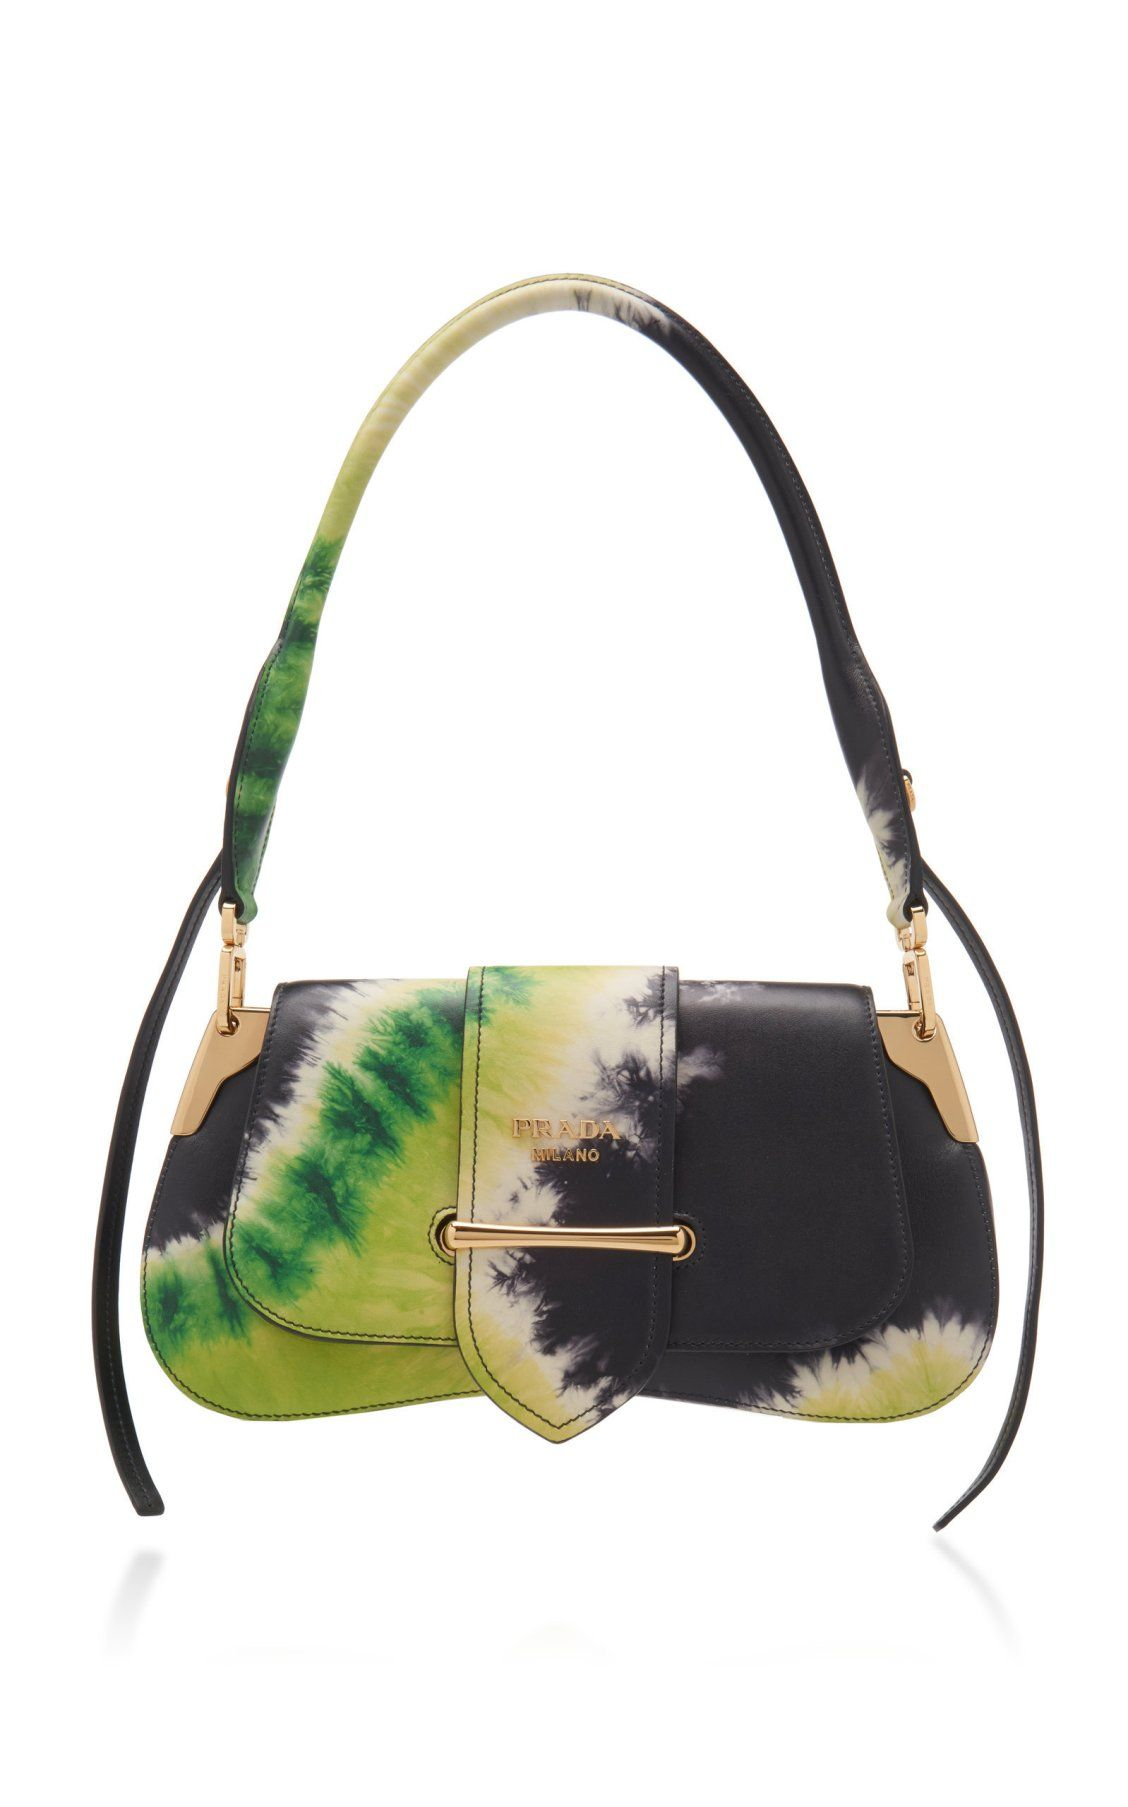 b60ee6456 Tie-Dye City Calf Pattina Bag by Prada Spring/Summer 2019 | Moda Operandi